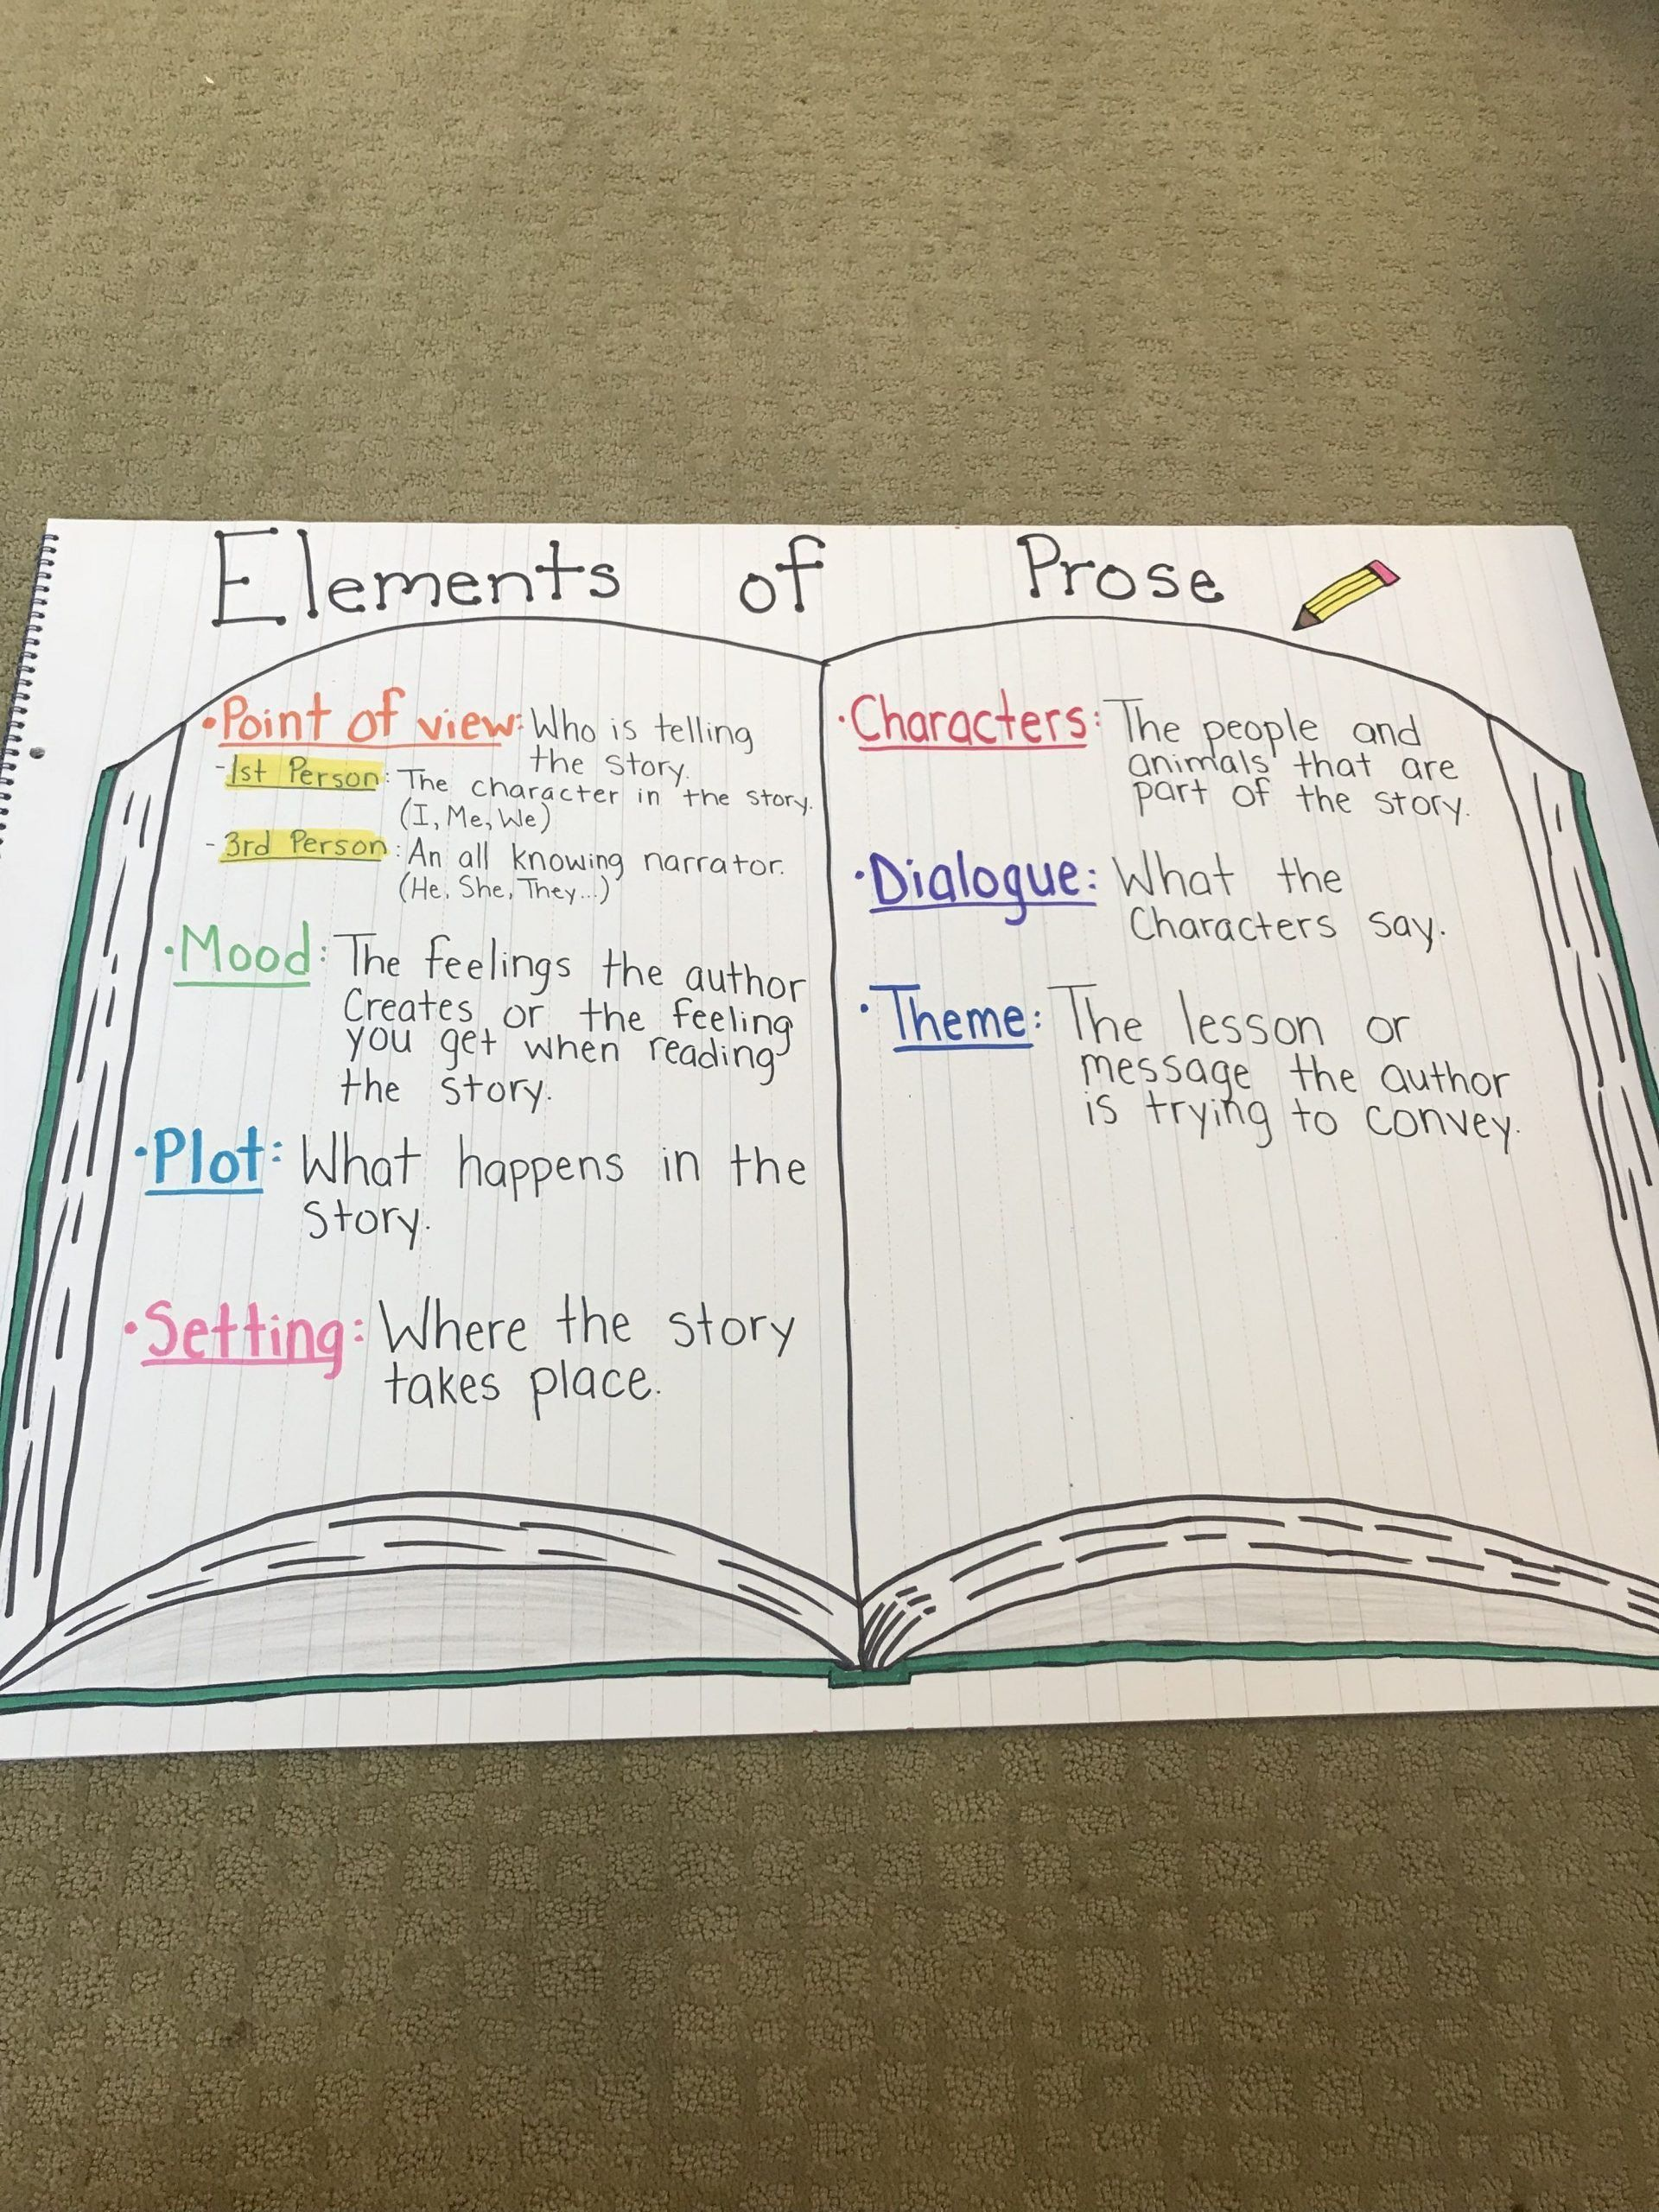 4th Grade Poetry Worksheets Worksheets Are An Important Part Of Studying English Toddlers Gai In 2021 Poetry Worksheets Story Elements Worksheet Poetry Anchor Chart [ 2560 x 1920 Pixel ]